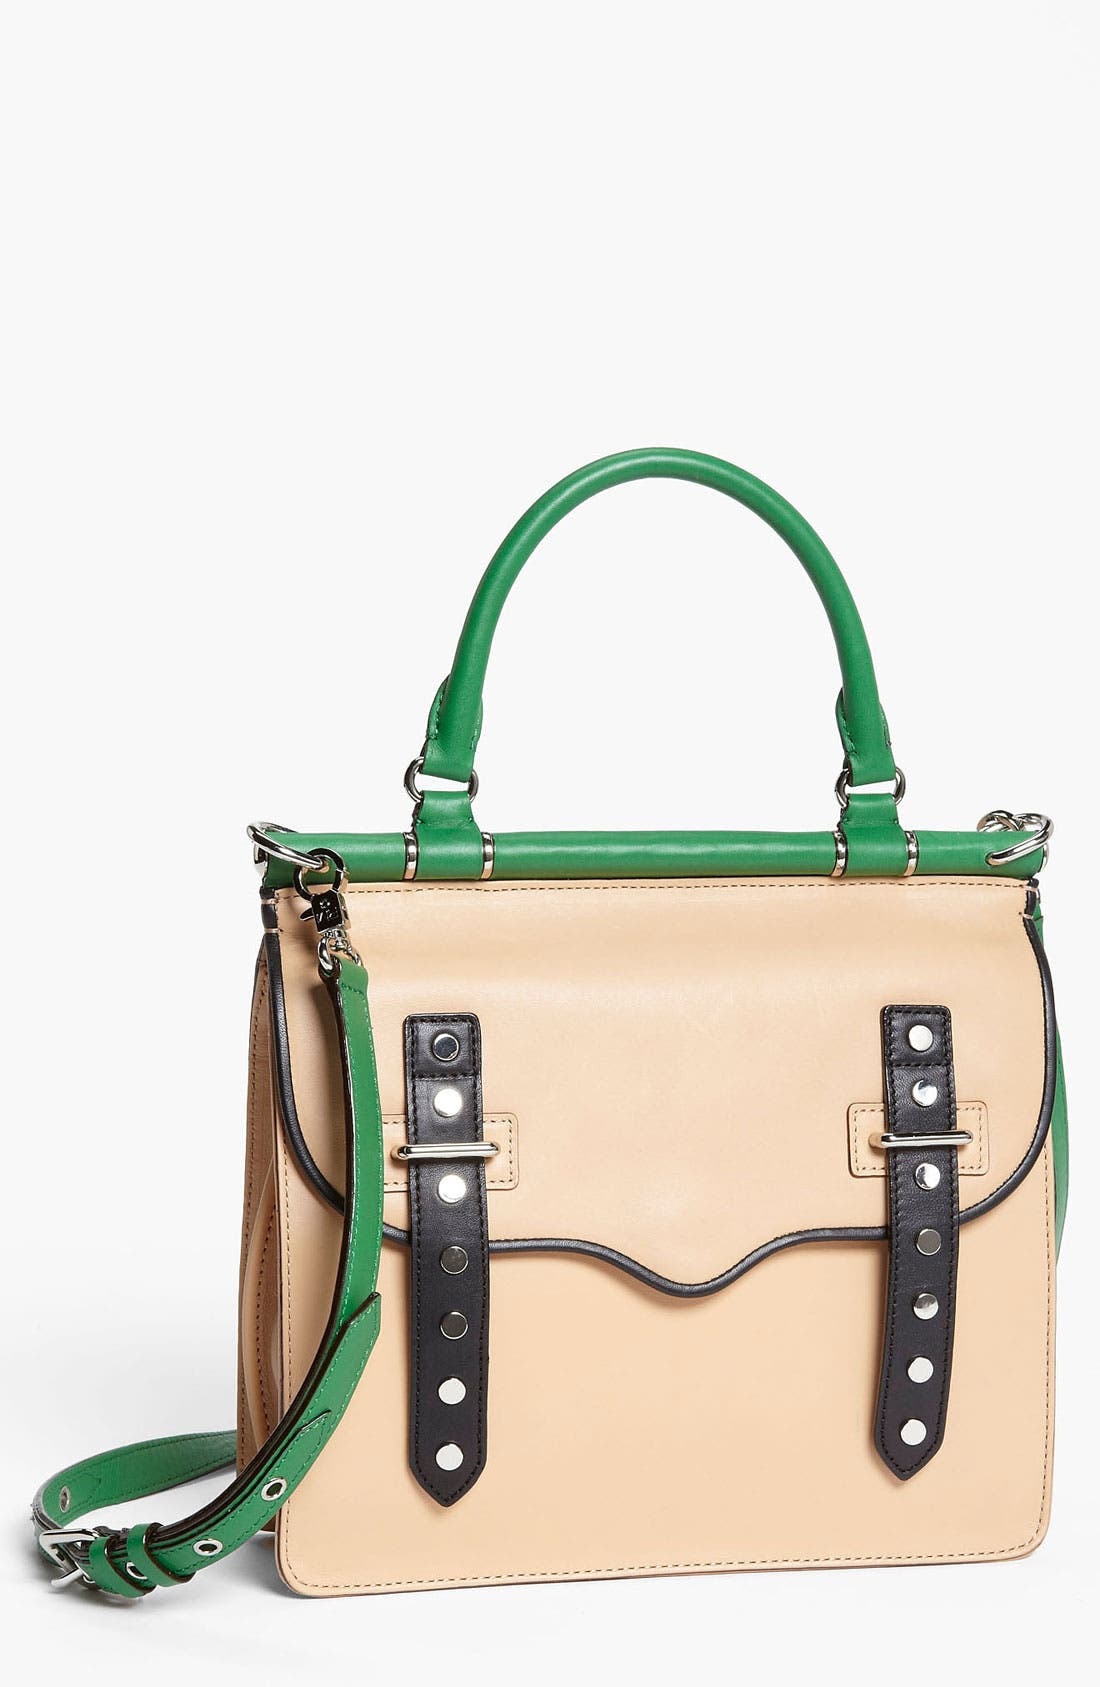 Main Image - Rebecca Minkoff 'Brett' Colorblock Satchel